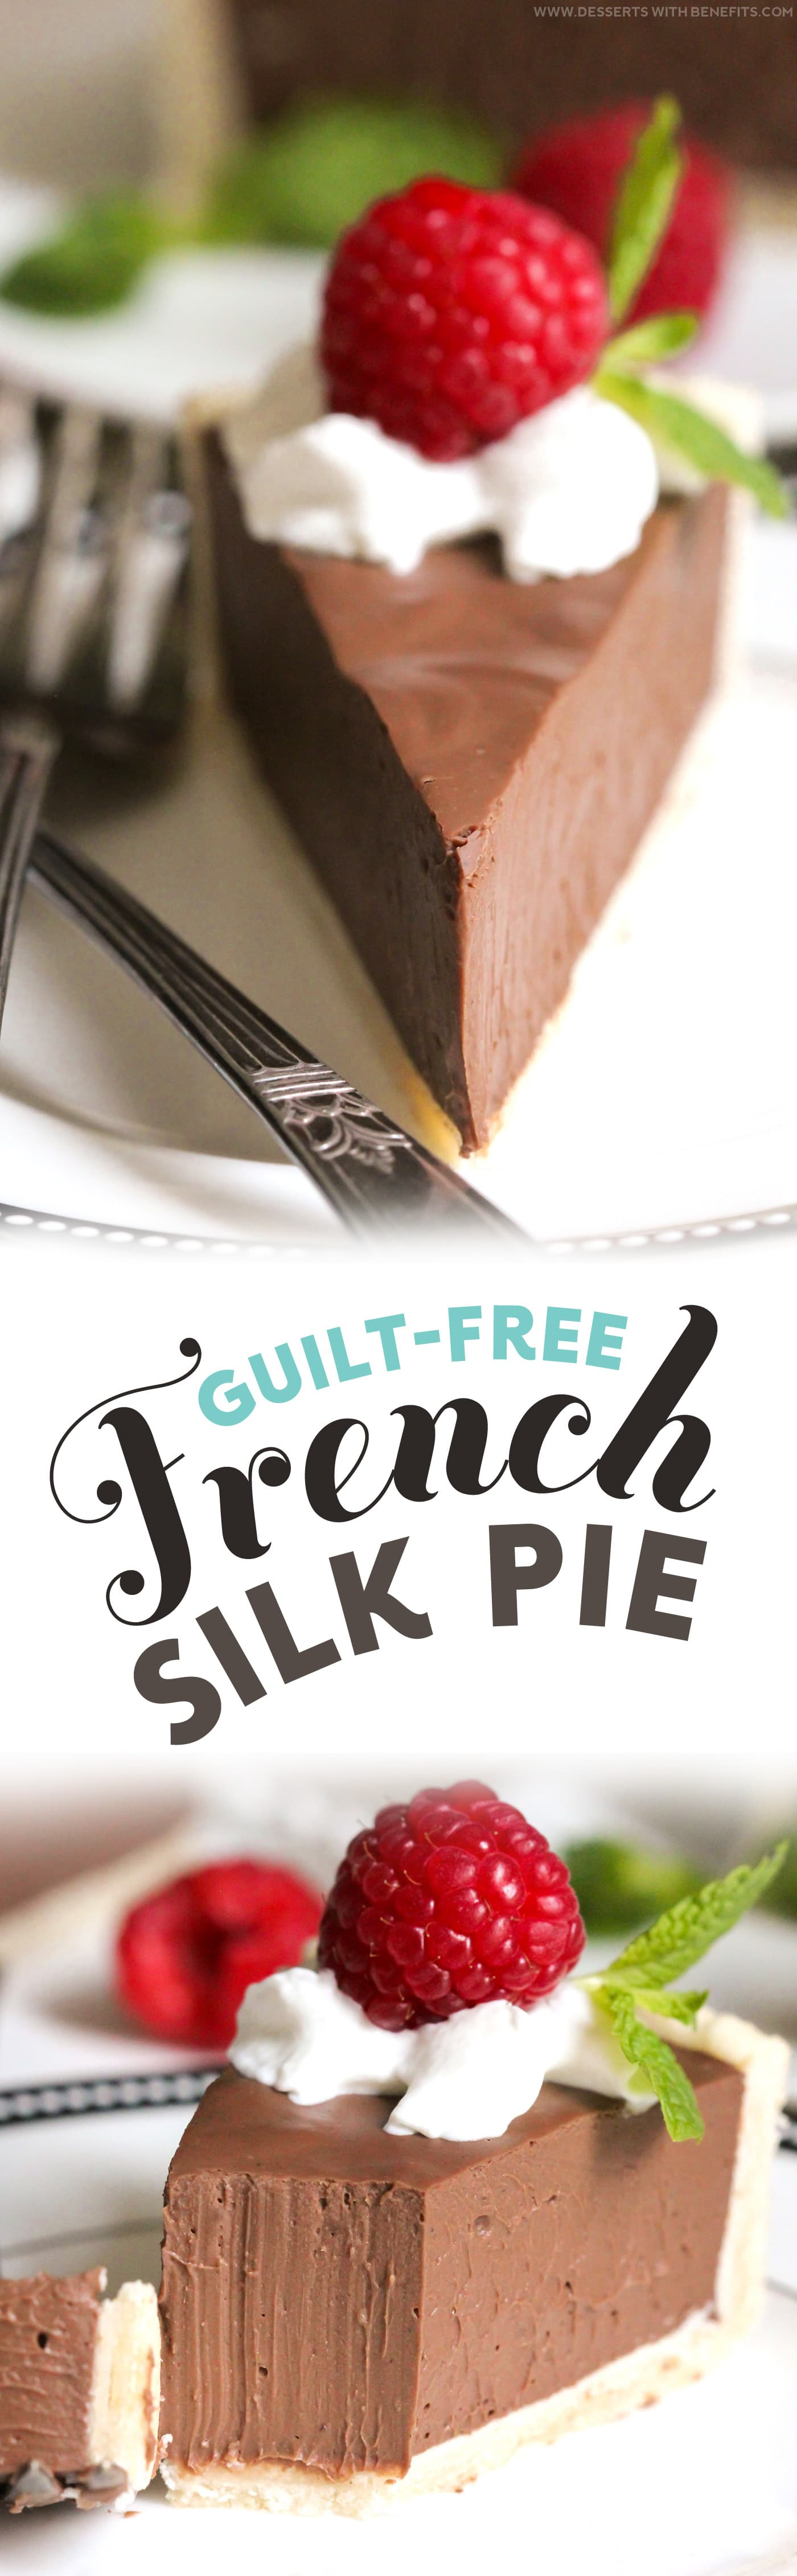 Guilt-Free French Silk Pie recipe – incredibly rich and chocolatey, sweet and creamy, and ultimately satisfying! You'd never know it's all natural and low in sugar -- Healthy Dessert Recipes at Desserts with Benefits